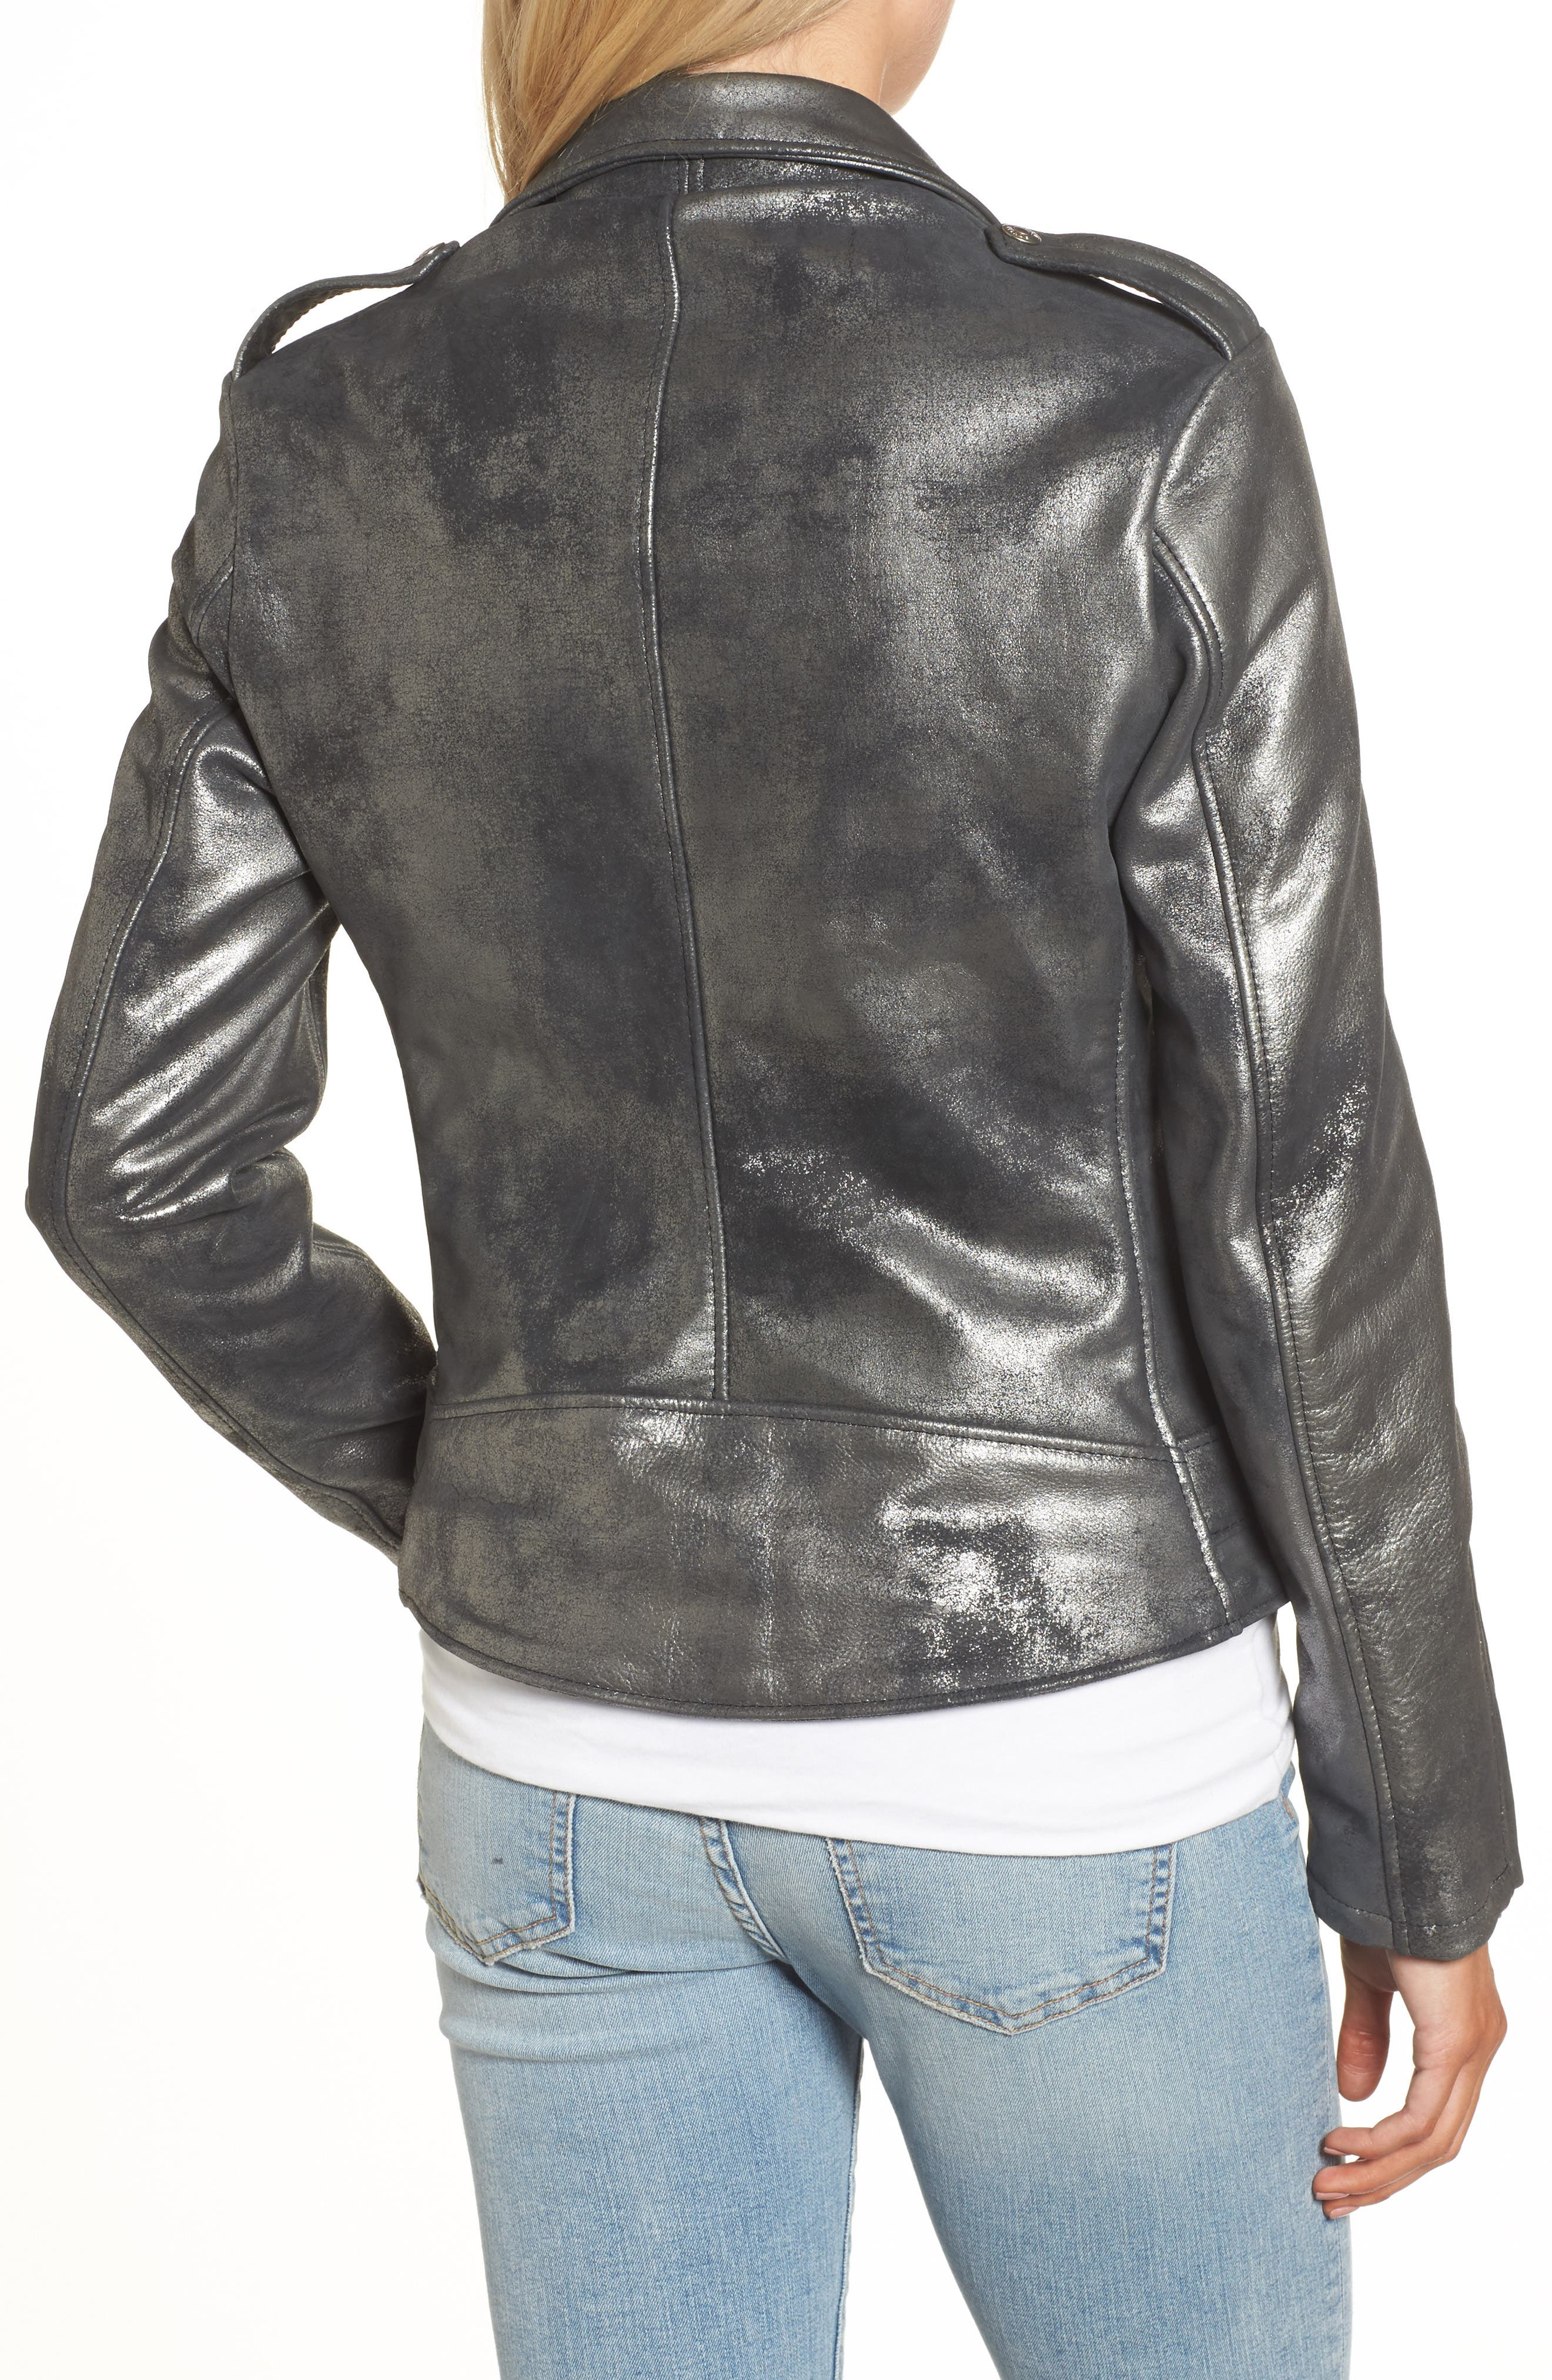 Perfecto Distressed Leather Boyfriend Jacket,                             Alternate thumbnail 2, color,                             Graphite